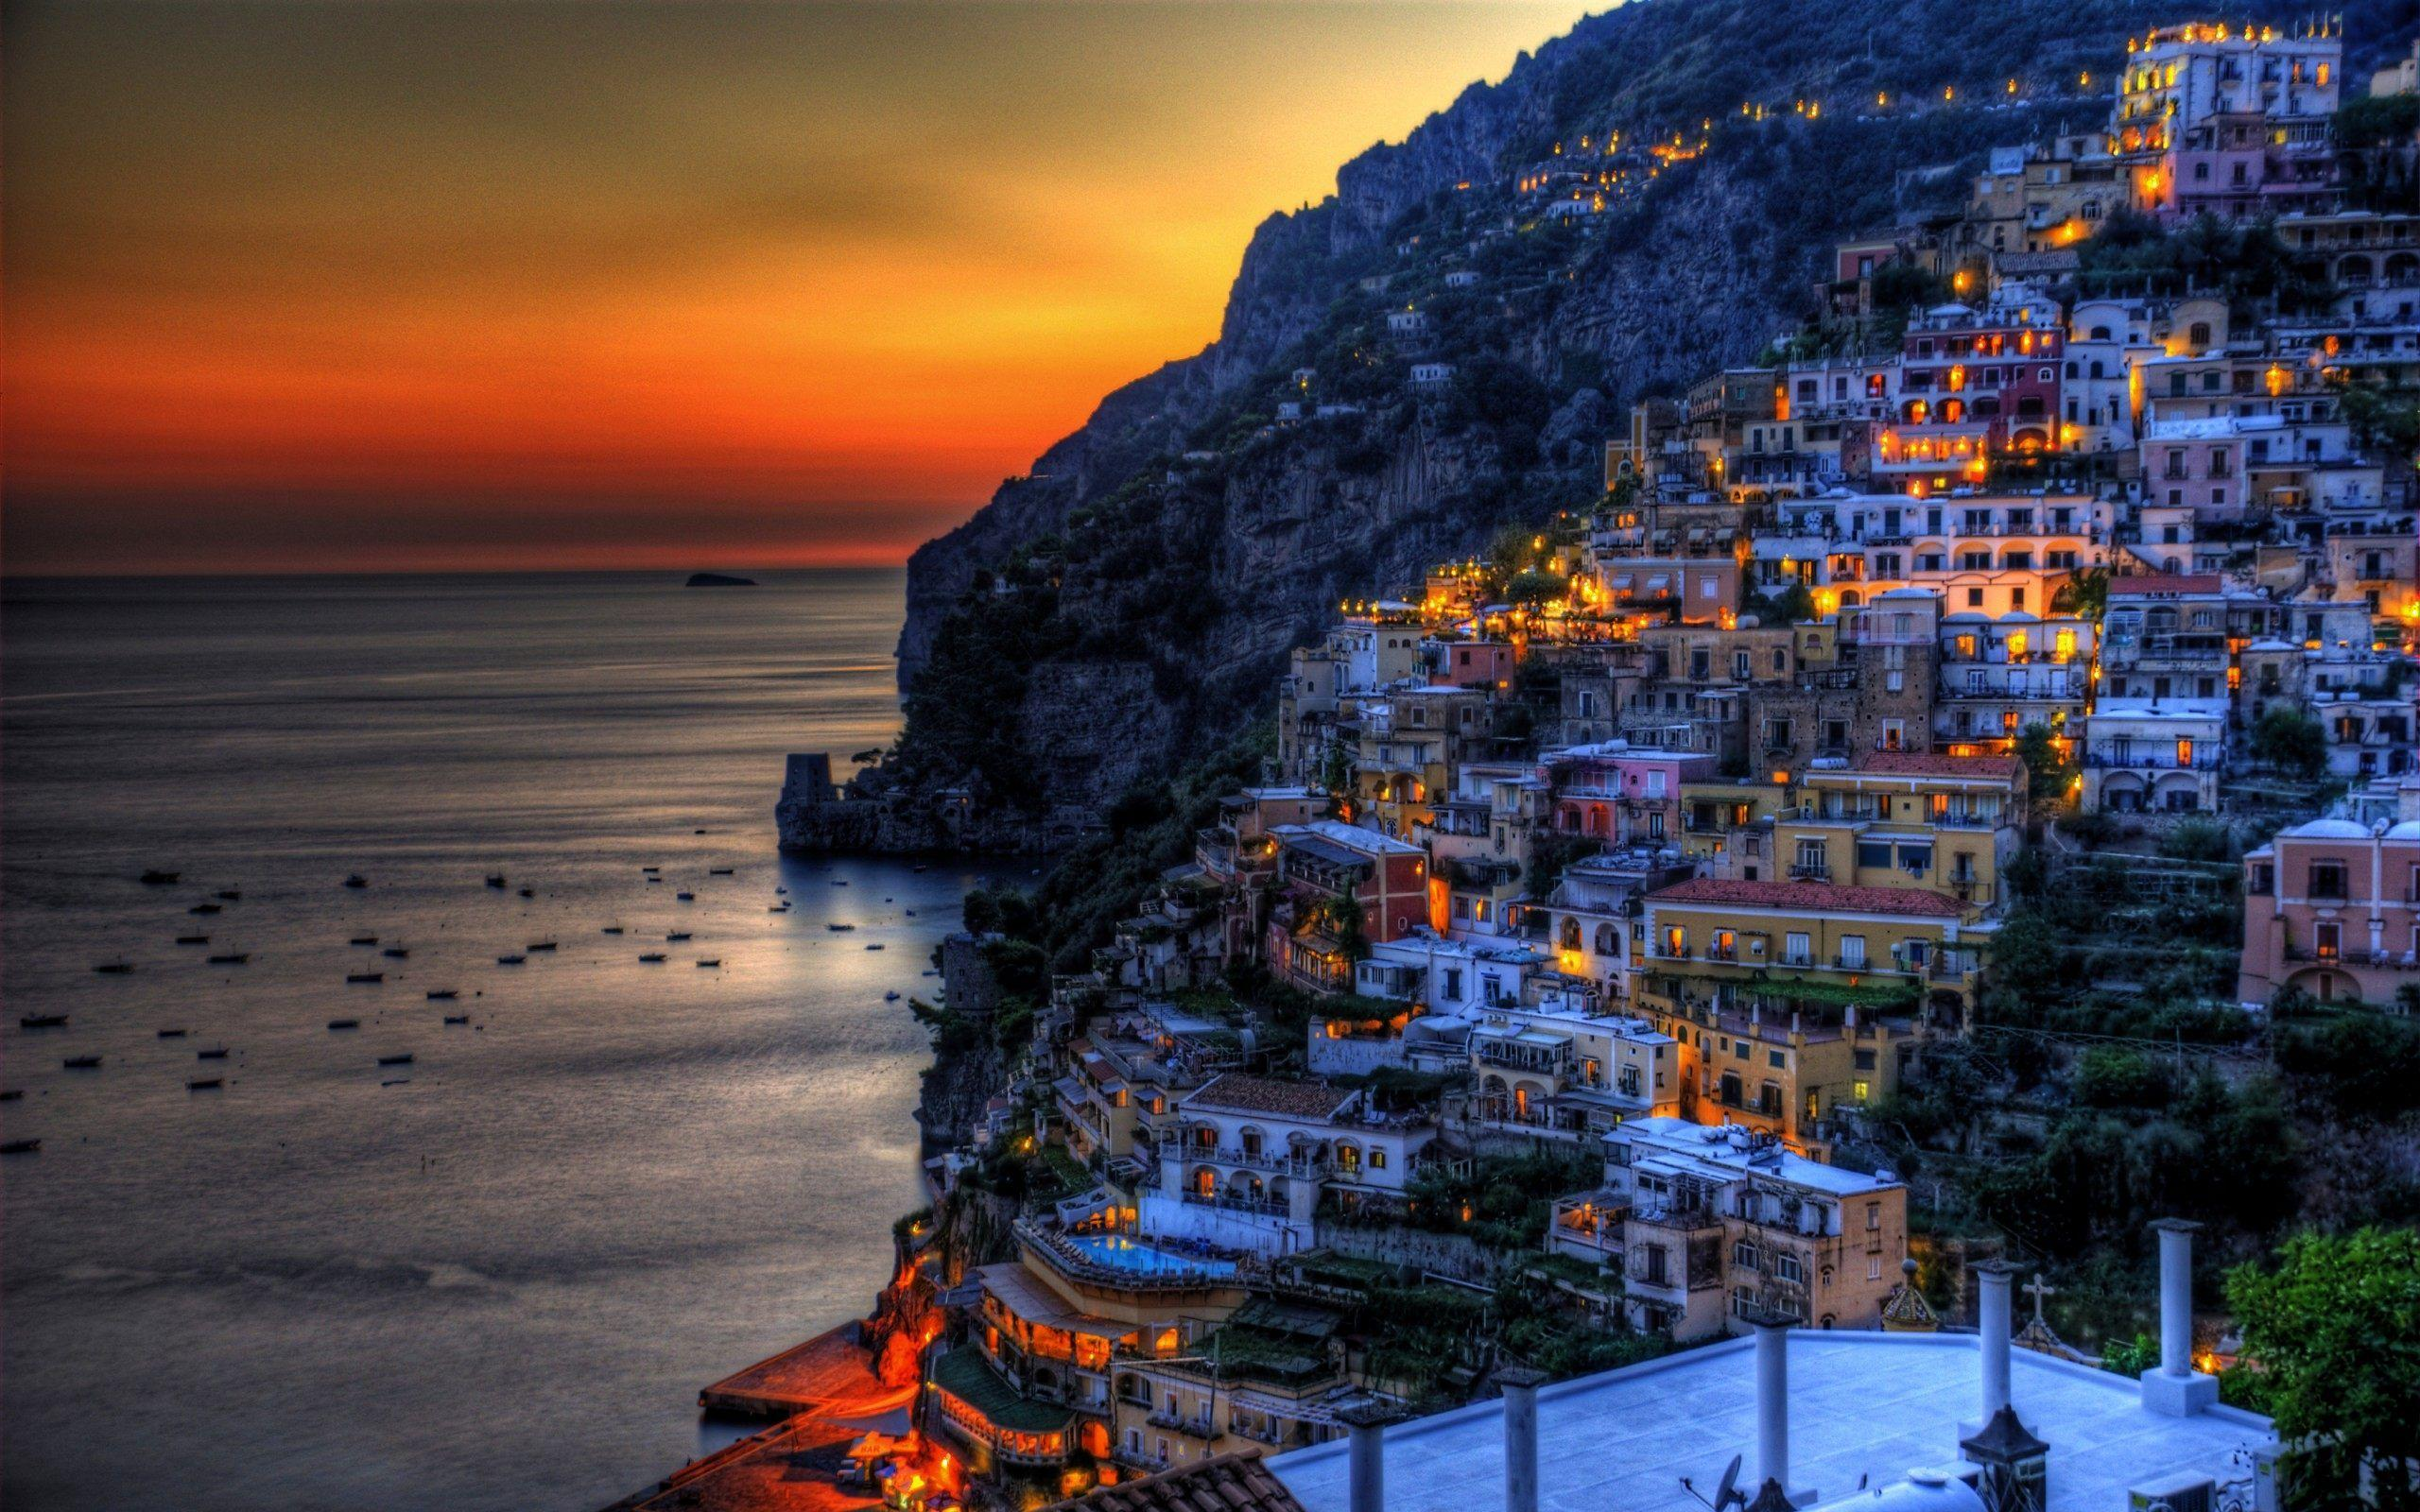 Amalfi Coast Italy Wallpapers HD For Desktop, PC and Mobile